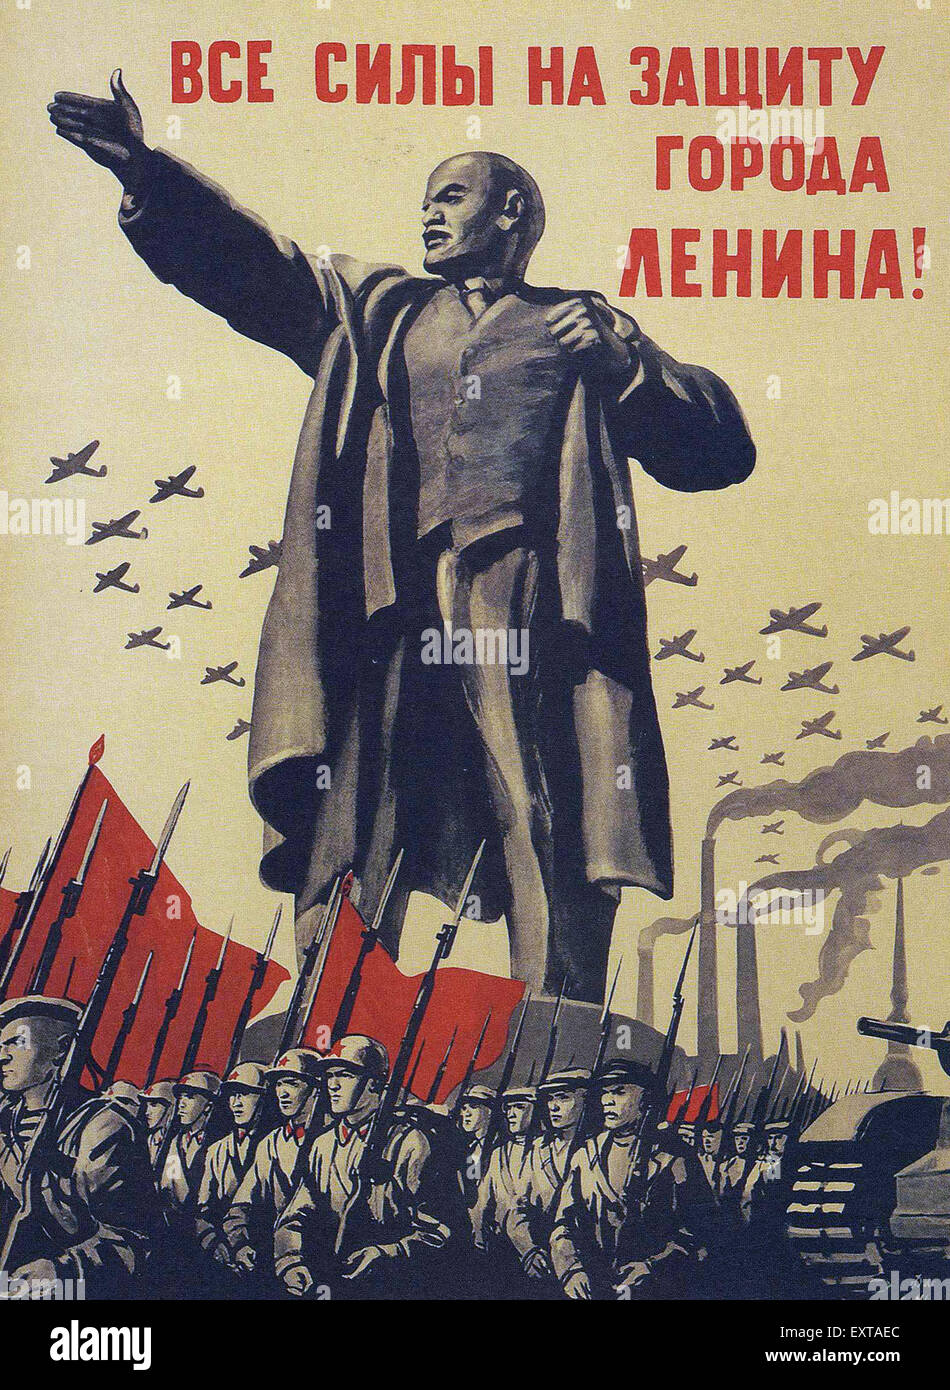 1940s Russia Russian Propaganda Poster Stock Photo